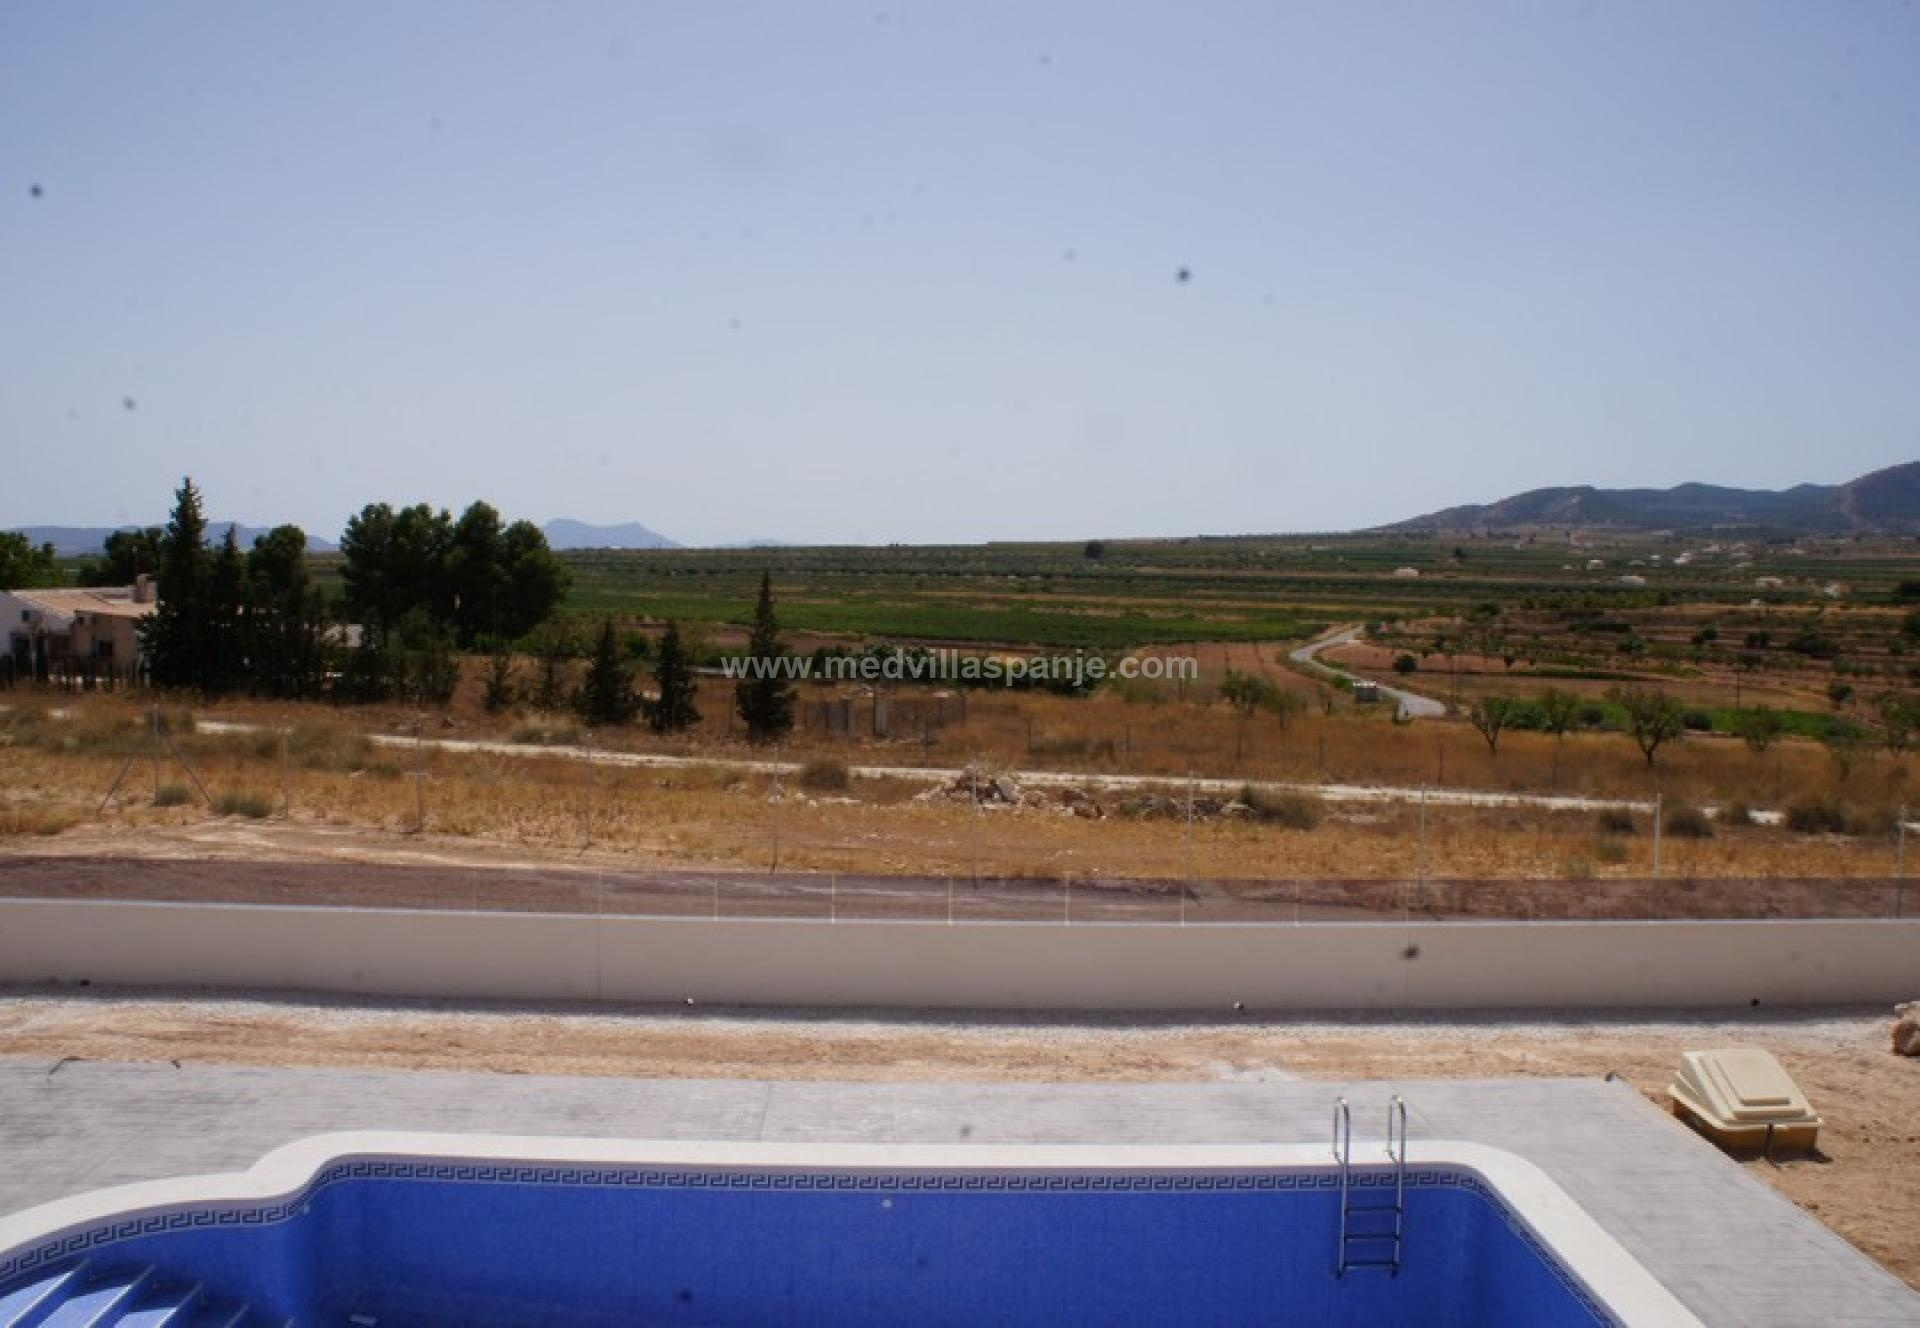 Build your own villa in Alicante, Costa Blanca in Medvilla Spanje